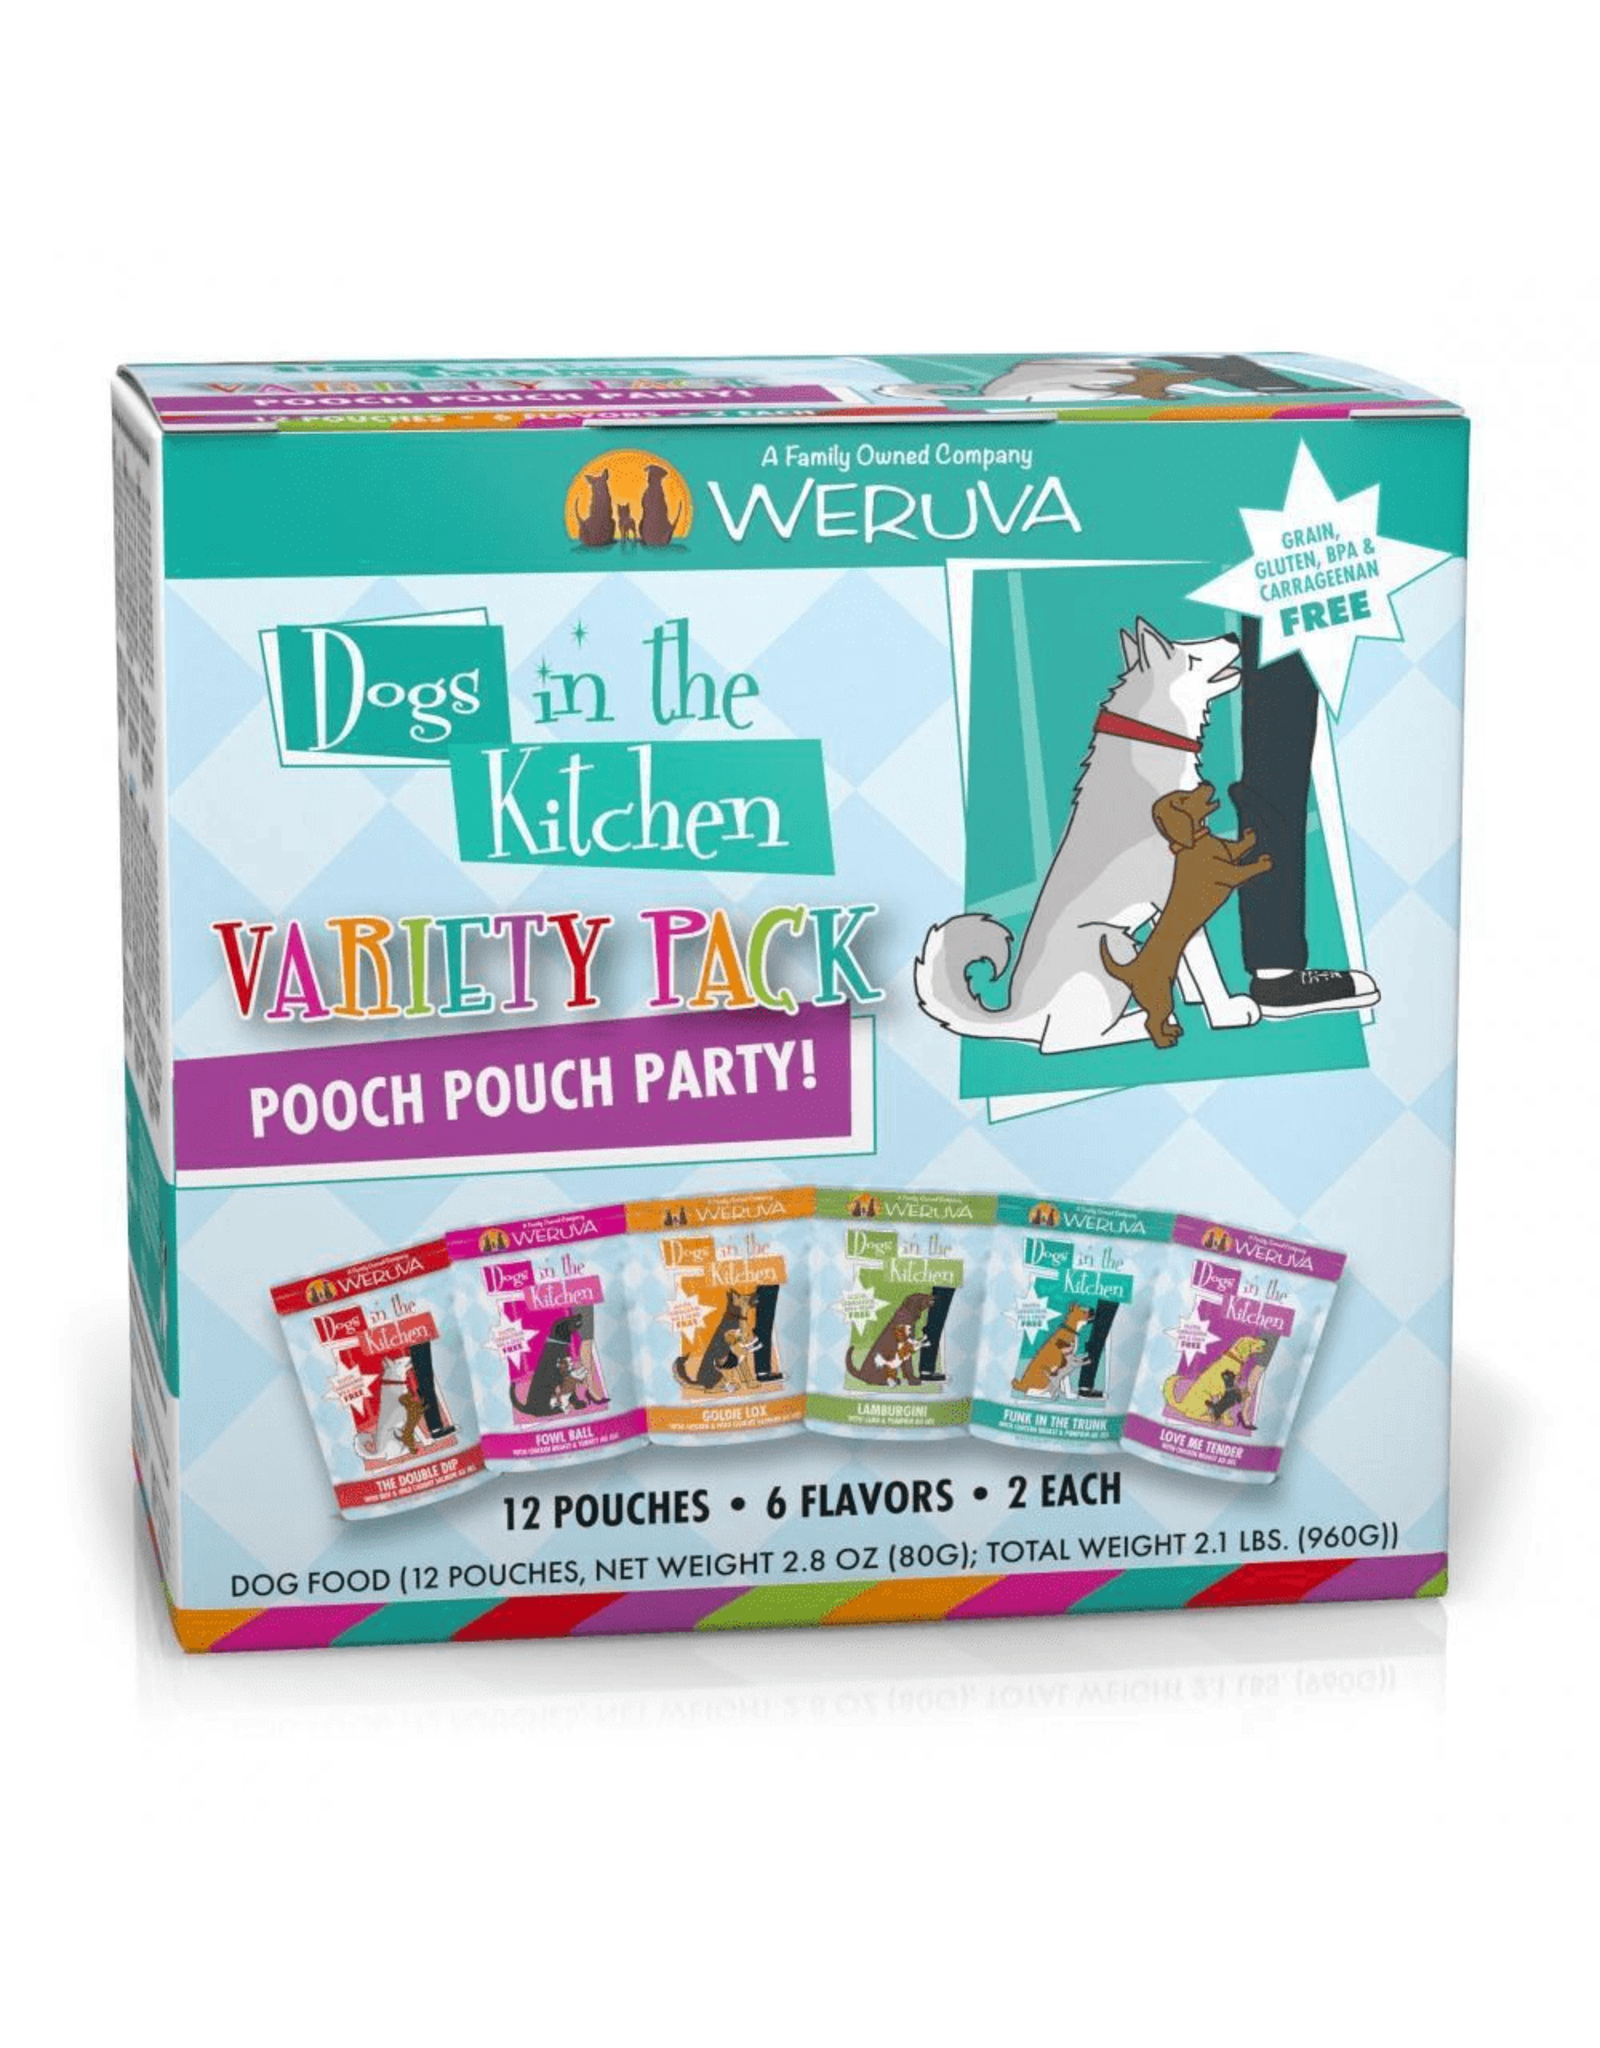 Weruva WERUVA DOG DOGS IN THE KITCHEN POOCH POUCH PARTY! VARIETY PACK 2.8OZ CASE OF 12